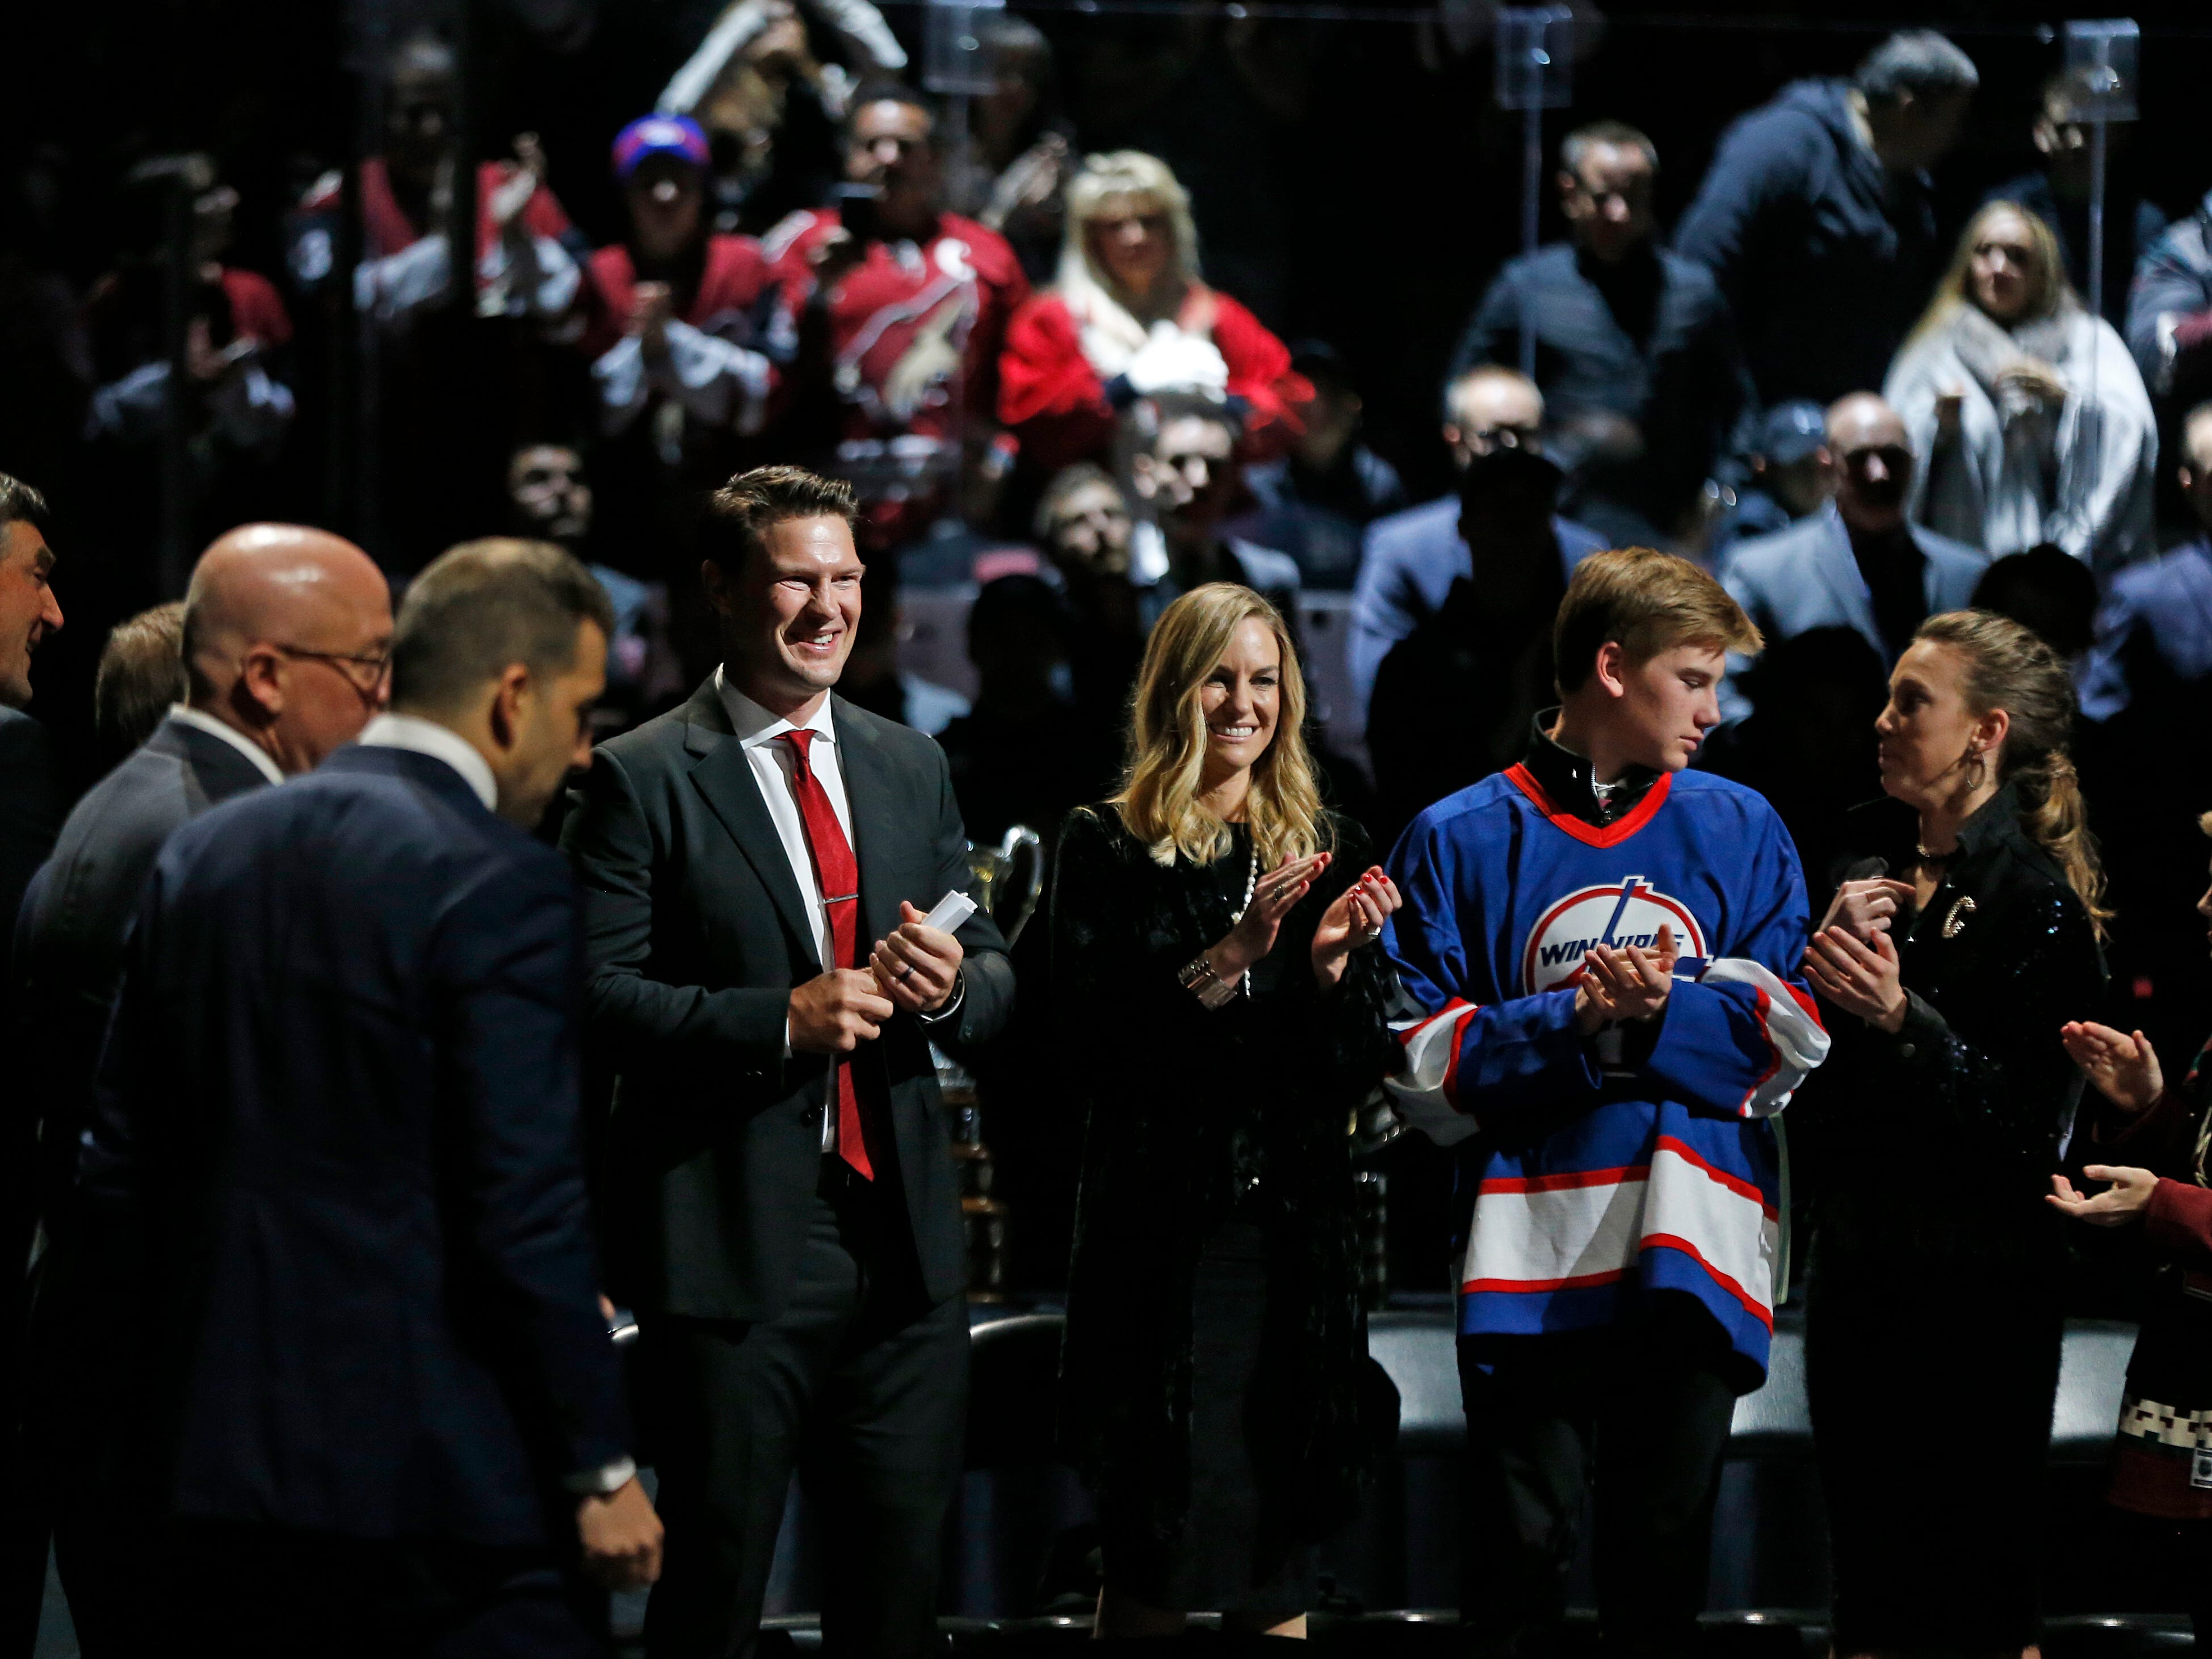 Shane Doan smiles as he receives a standing ovation next to his wife Andrea during his jersey retirement ceremony at Gila River Arena in Glendale, Ariz. on February 24, 2019.